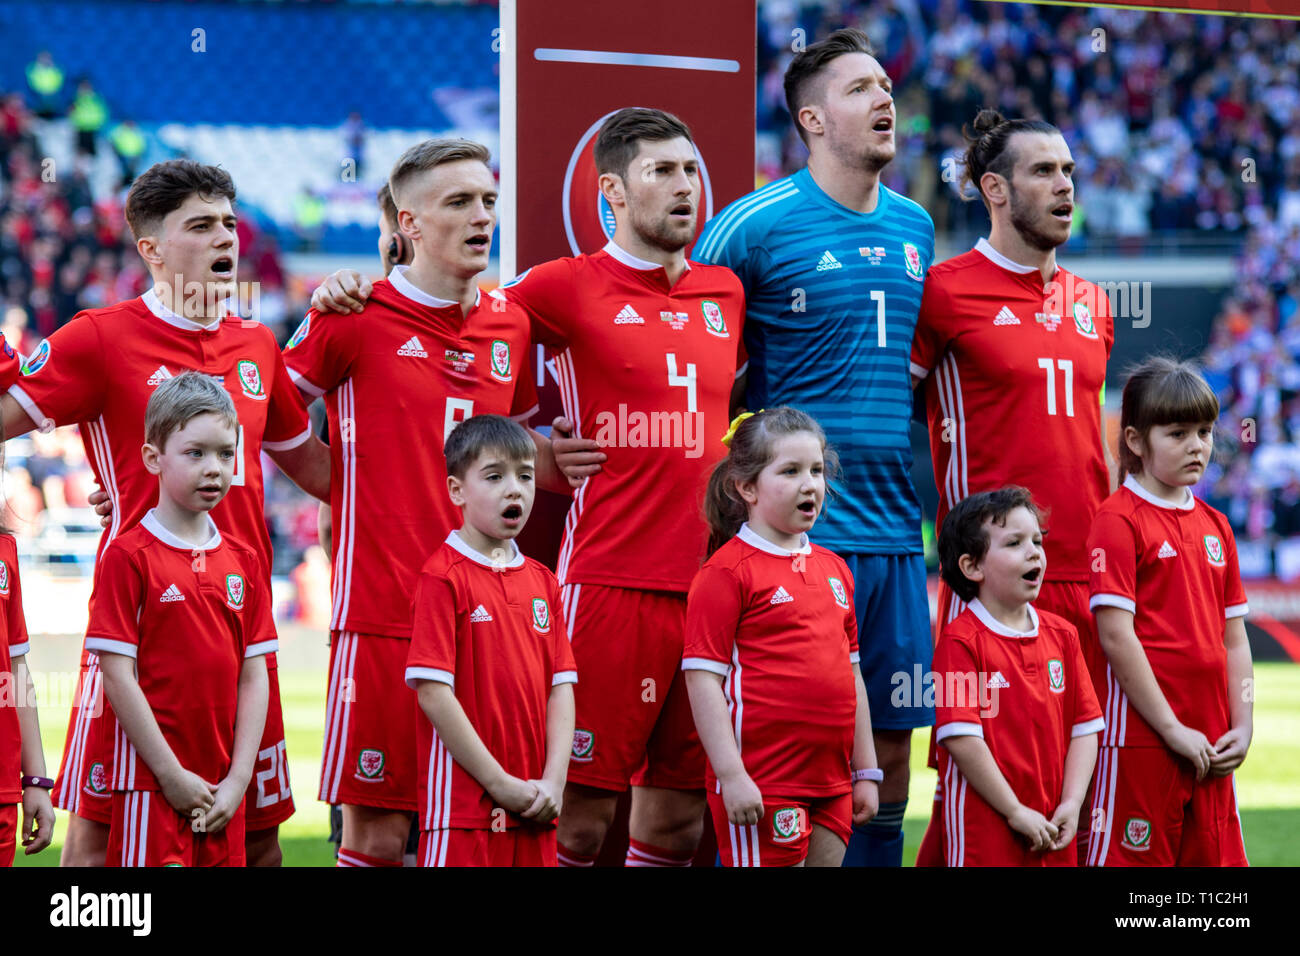 Dan James, Matt Smith, Ben Davies, Wayne Hennessey & Gareth Bale lineup for the national anthem. Wales v Slovakia UEFA Euro 2020 Qualifier in Cardiff. Stock Photo